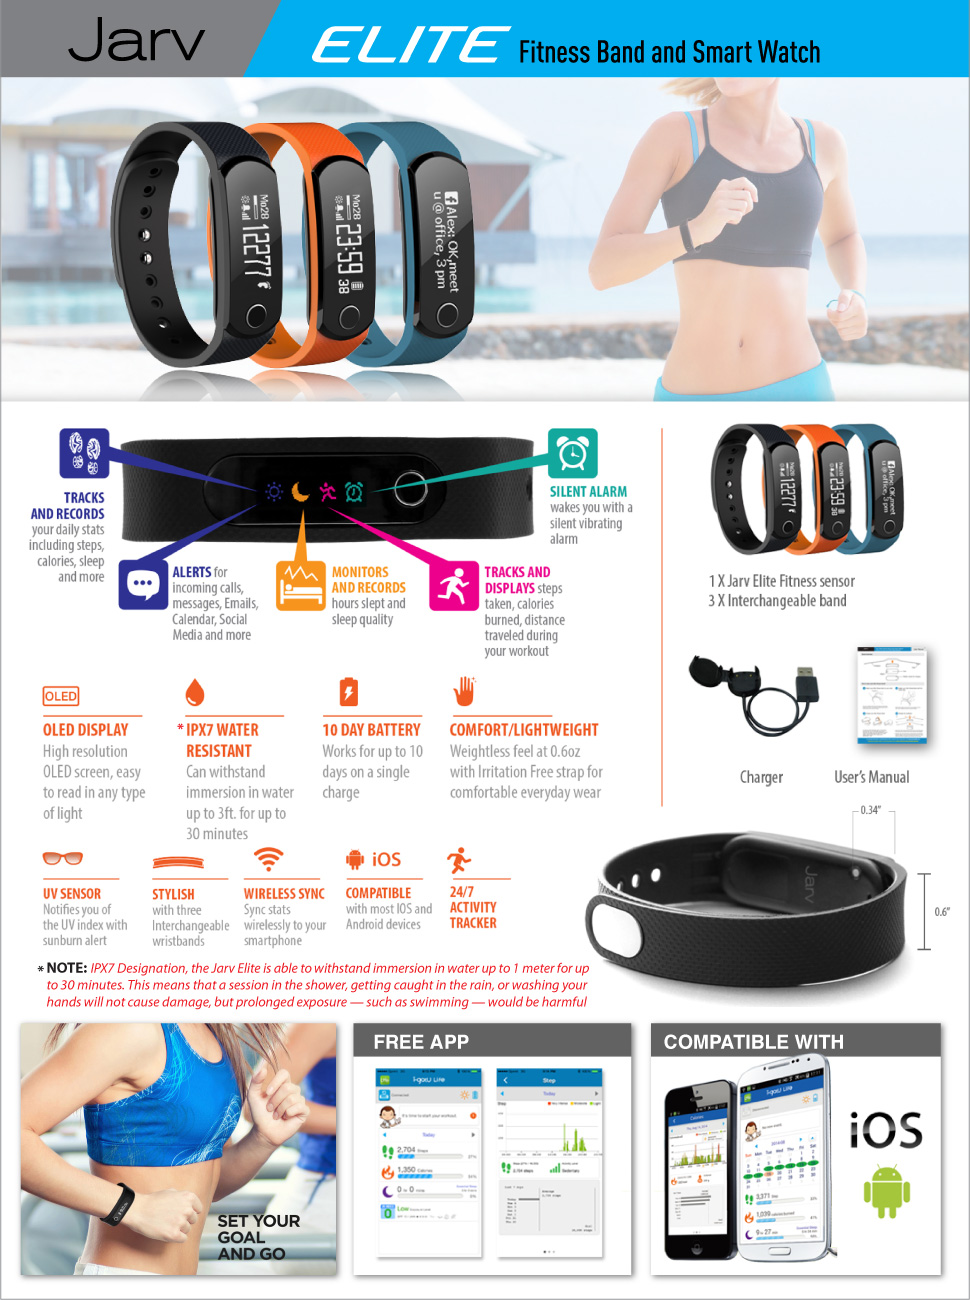 The Jarv Elite Bluetooth Activity/Fitness band and Smart Watch is the